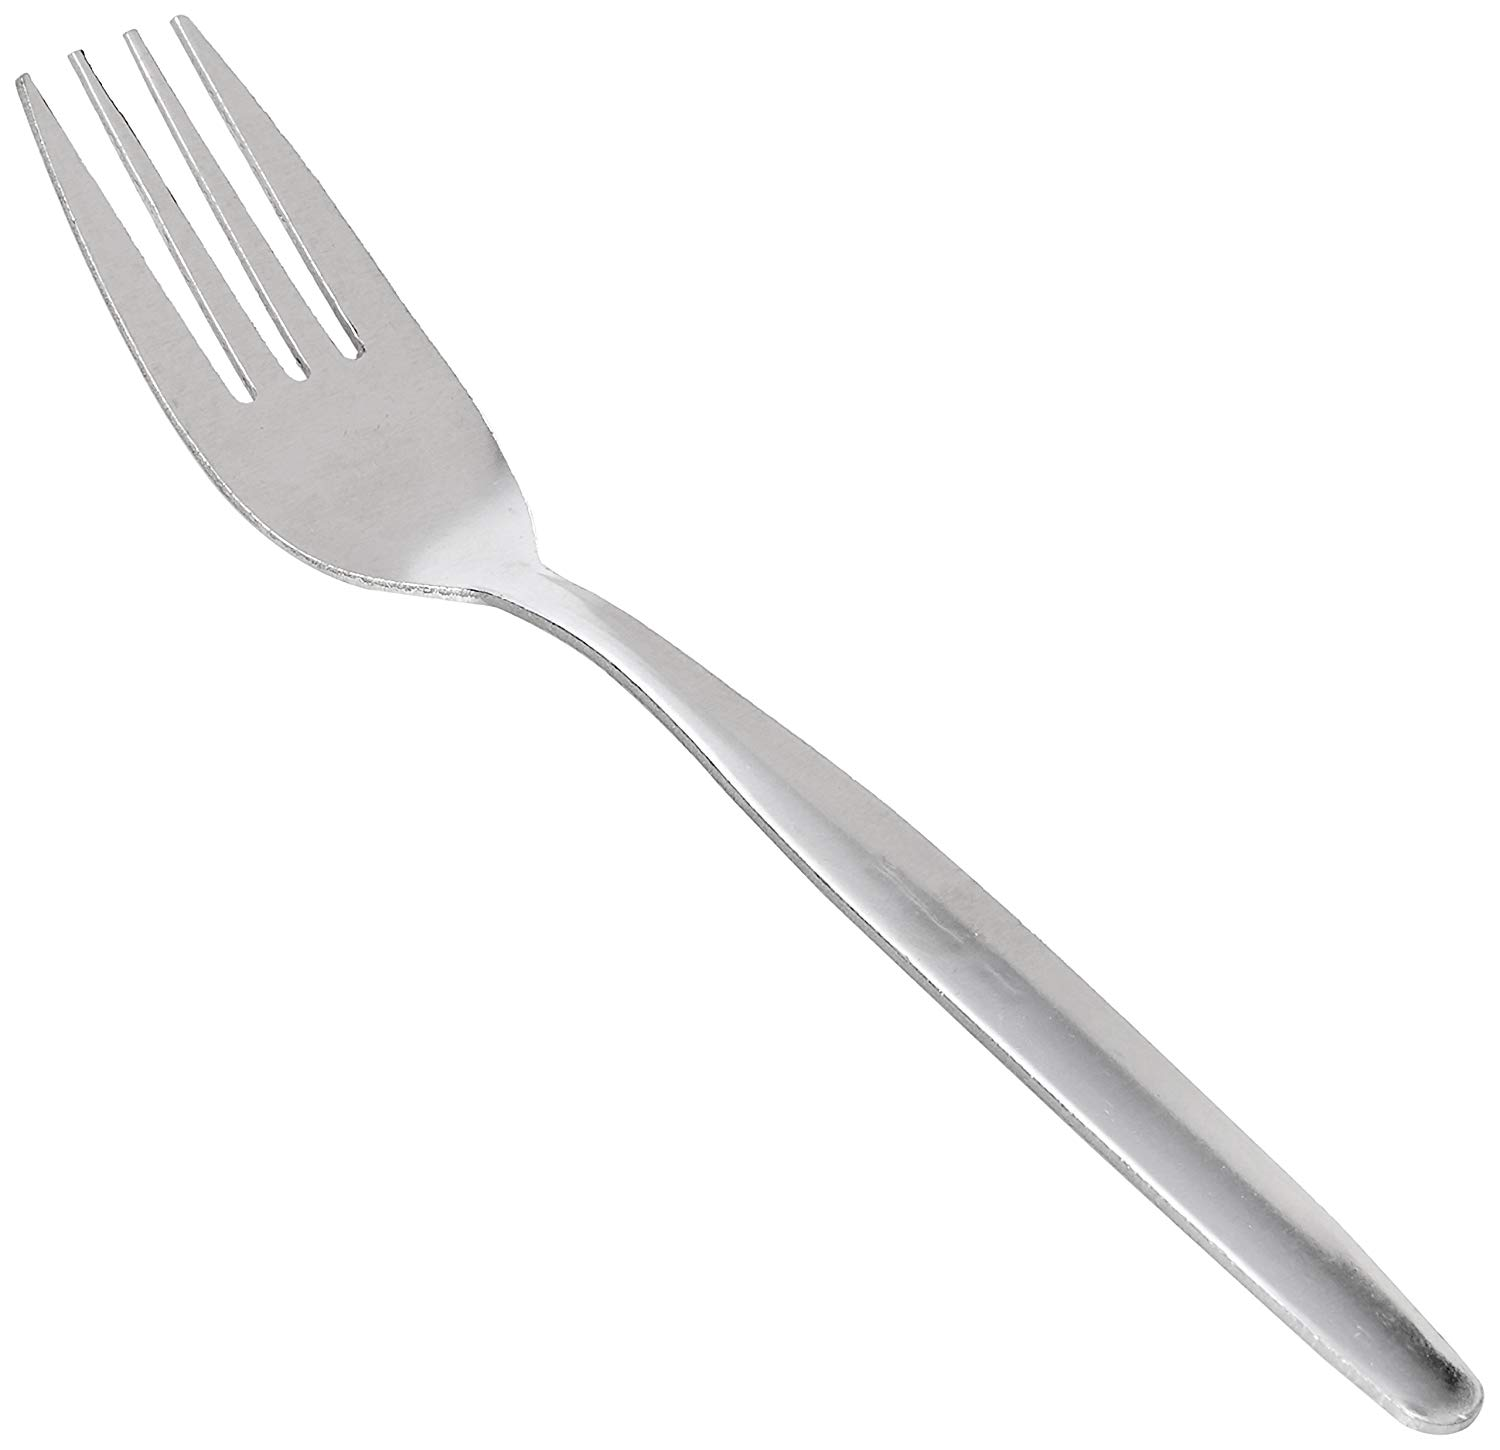 Kelso Cutlery Table Fork (Pack of 12)